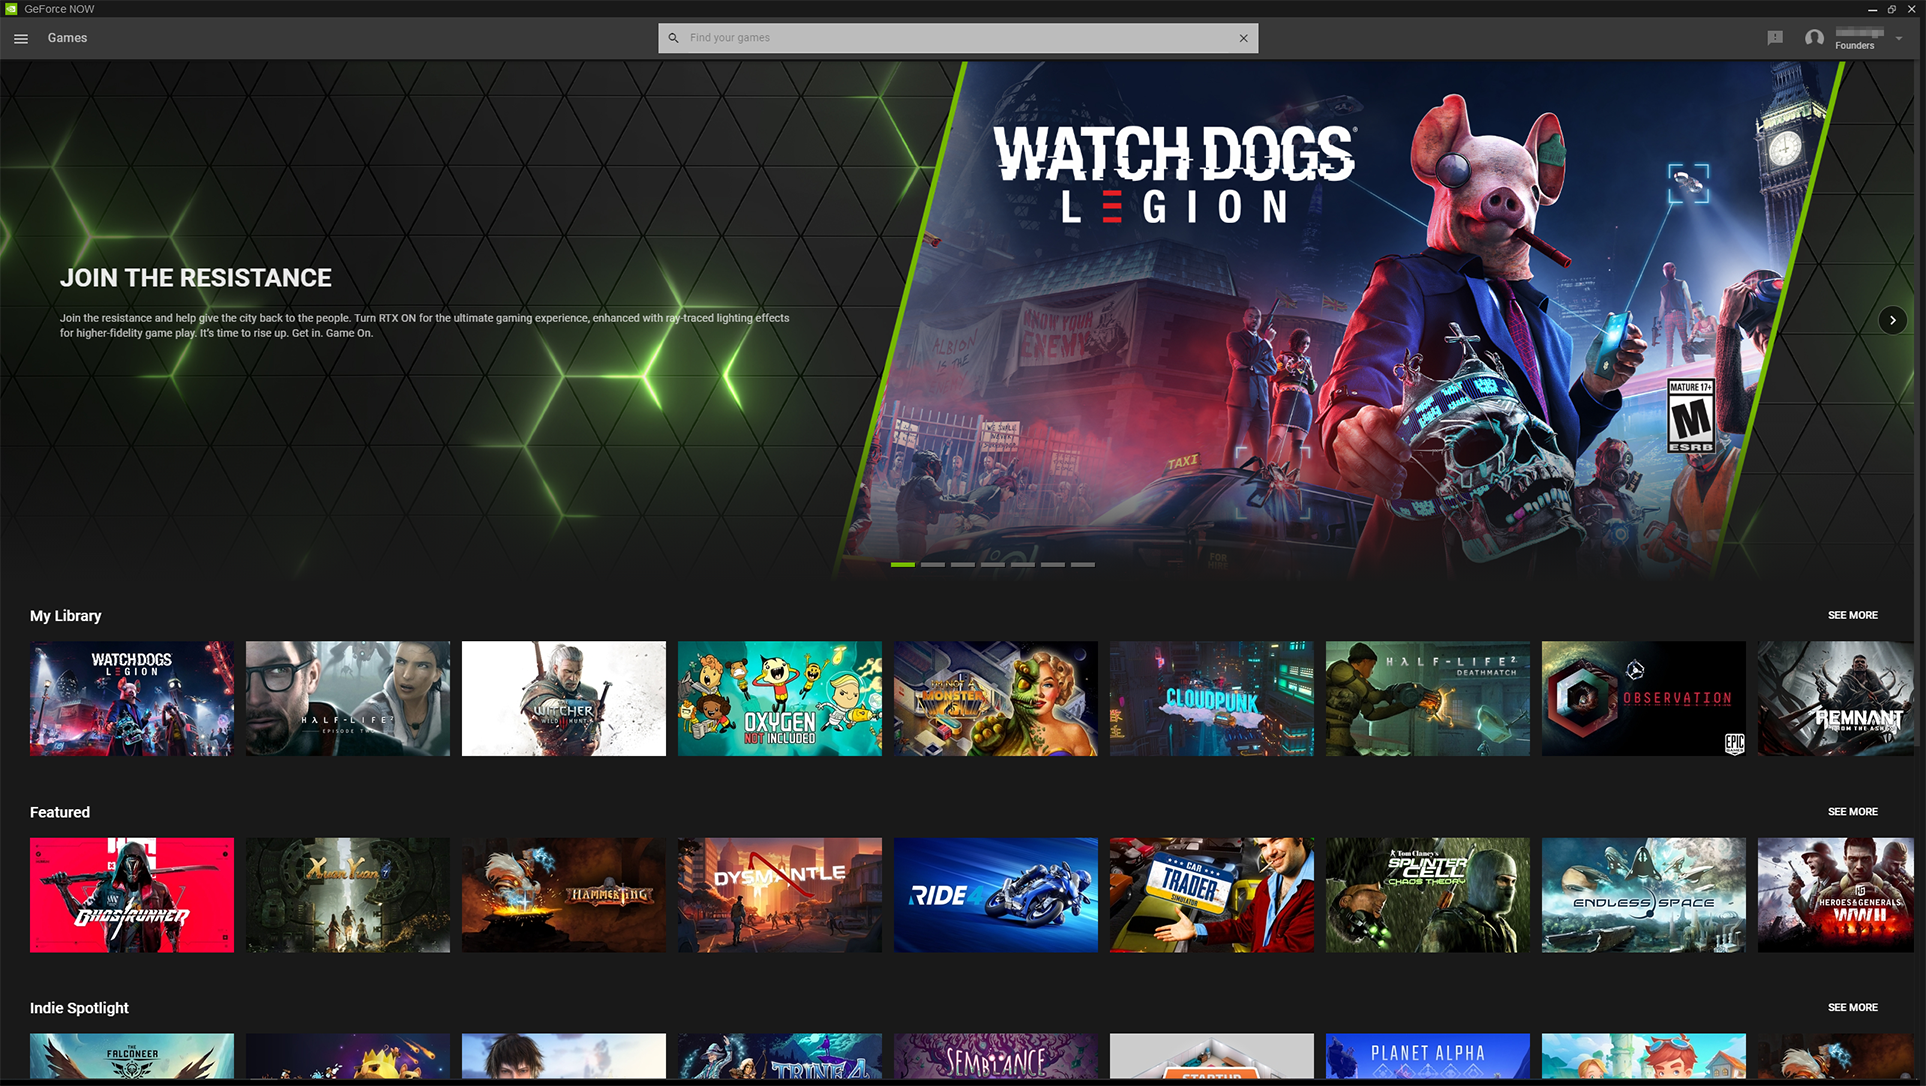 iPhone and iPad get game via Nvidia GeForce Now